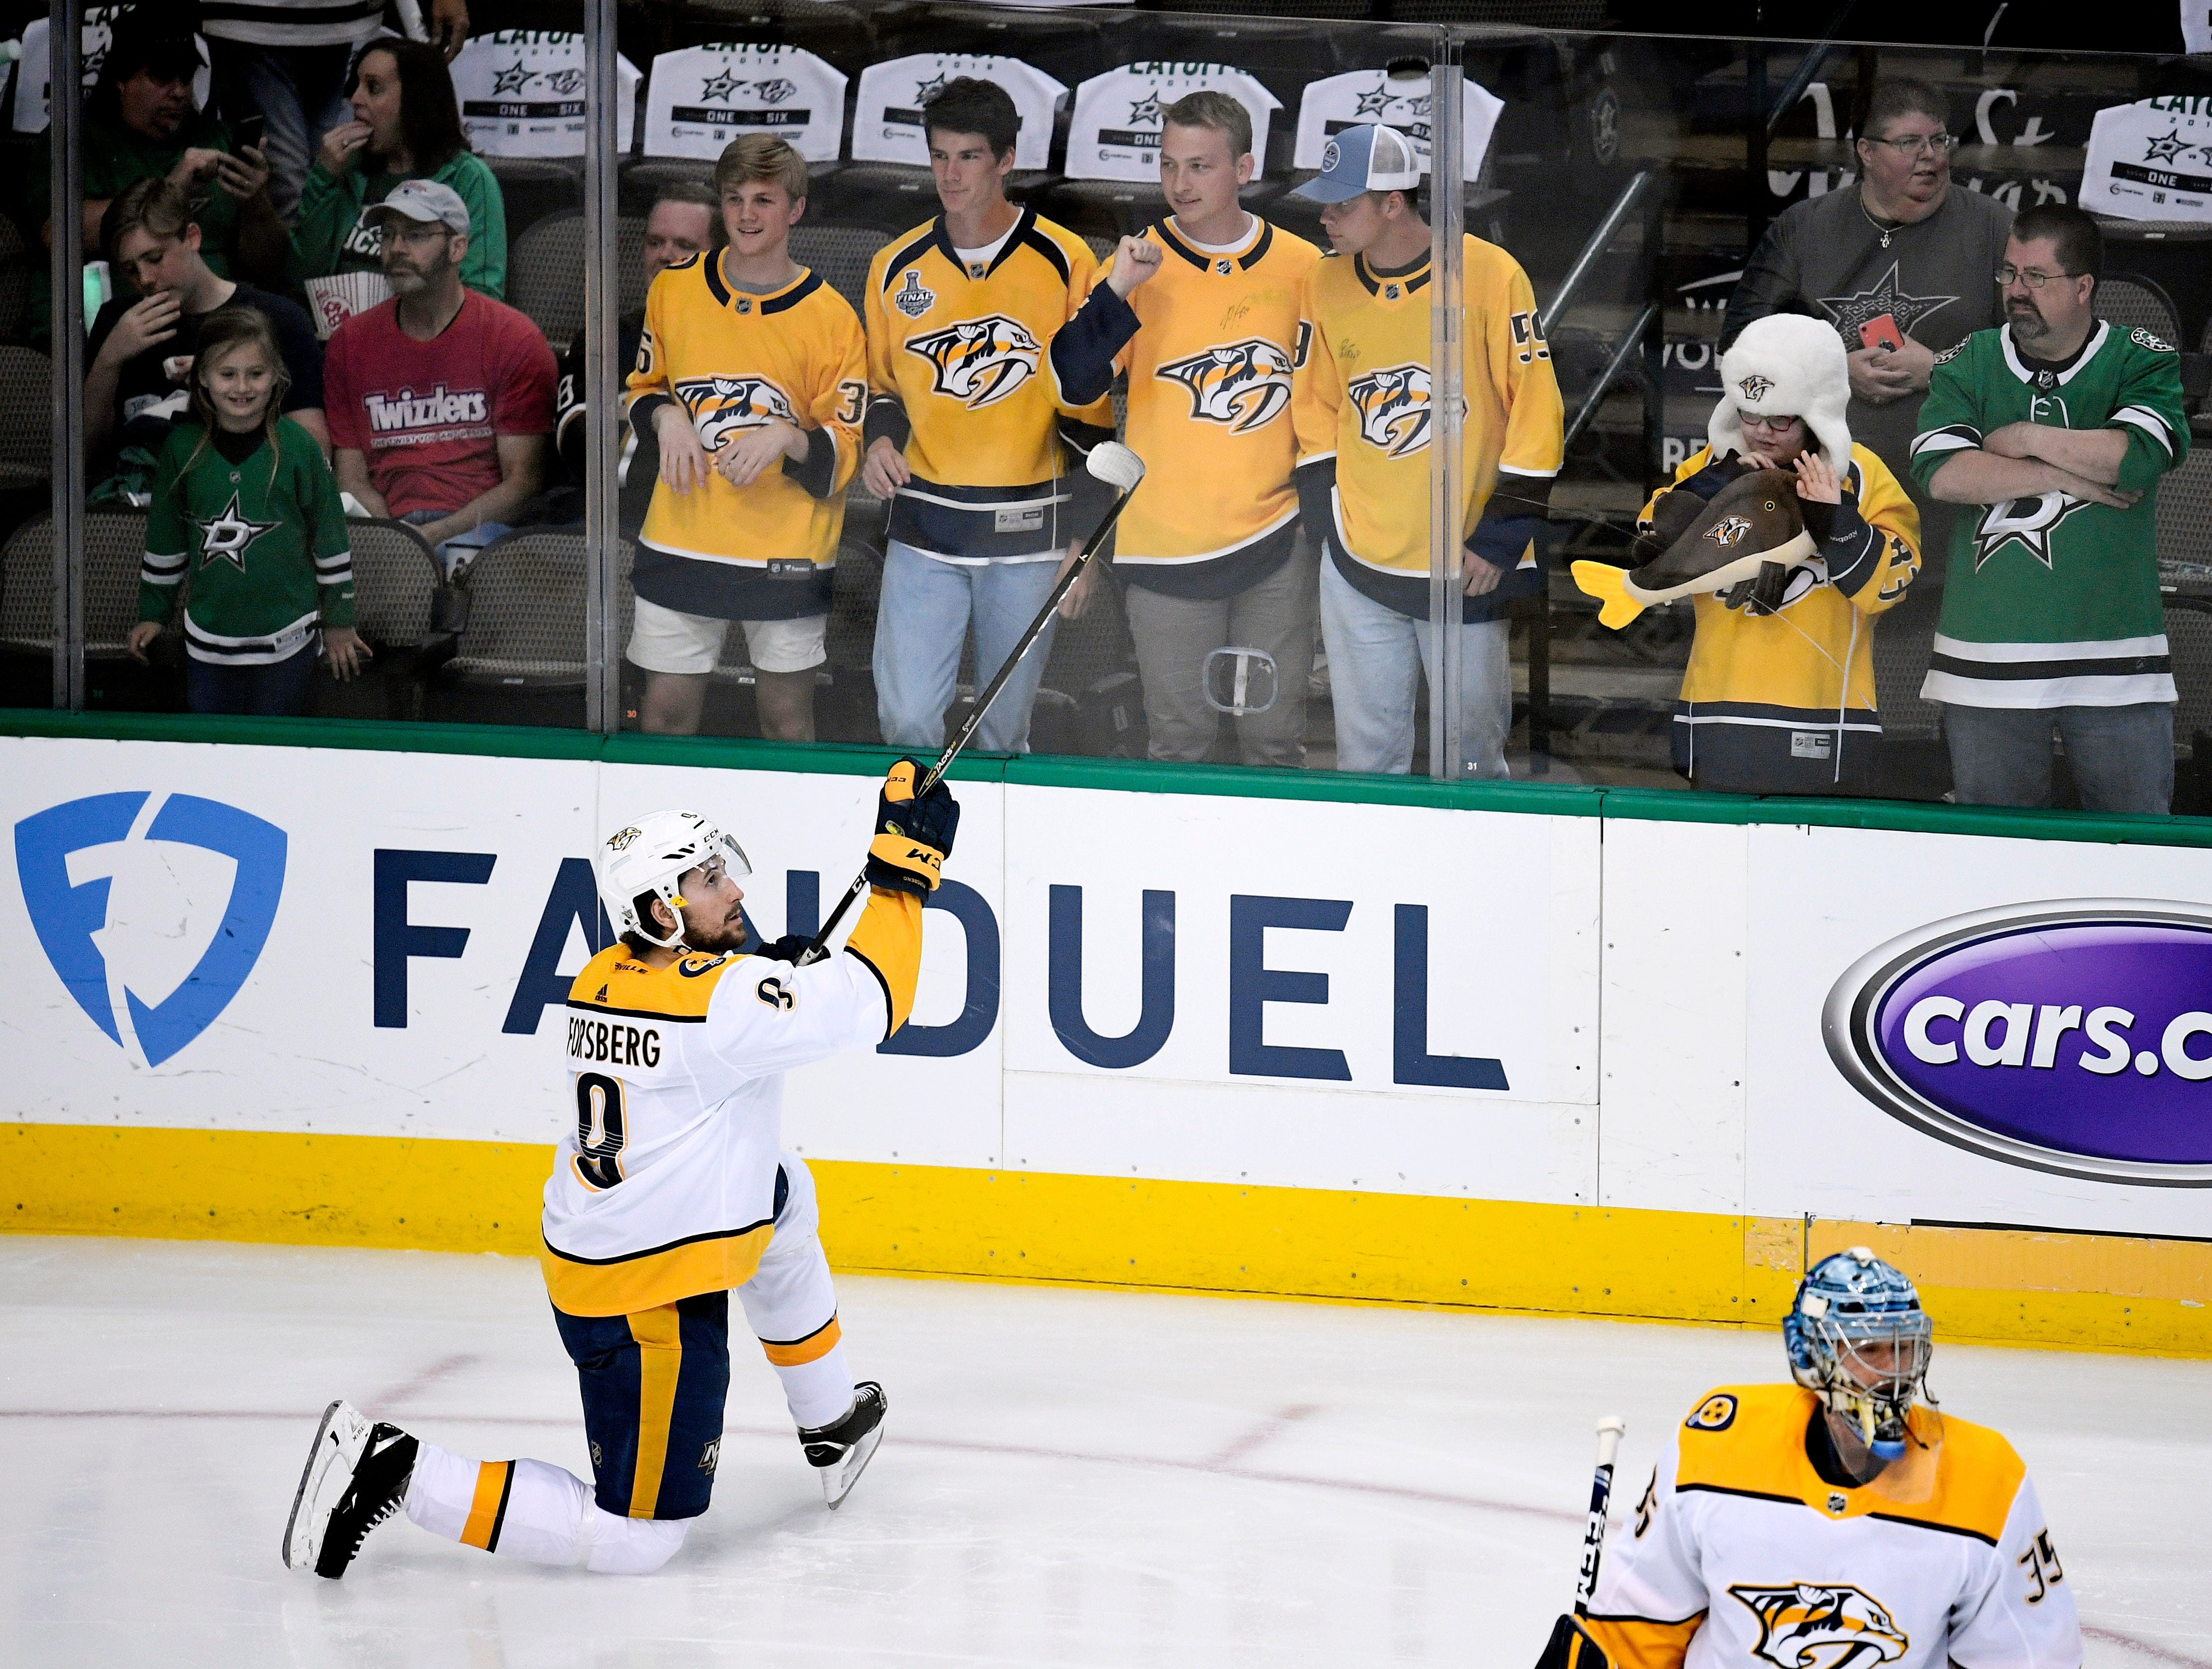 Predators fans watch Nashville Predators left wing Filip Forsberg (9) warm up before the divisional semifinal game against the Dallas Stars at the American Airlines Center in Dallas, Texas, Monday, April 22, 2019.